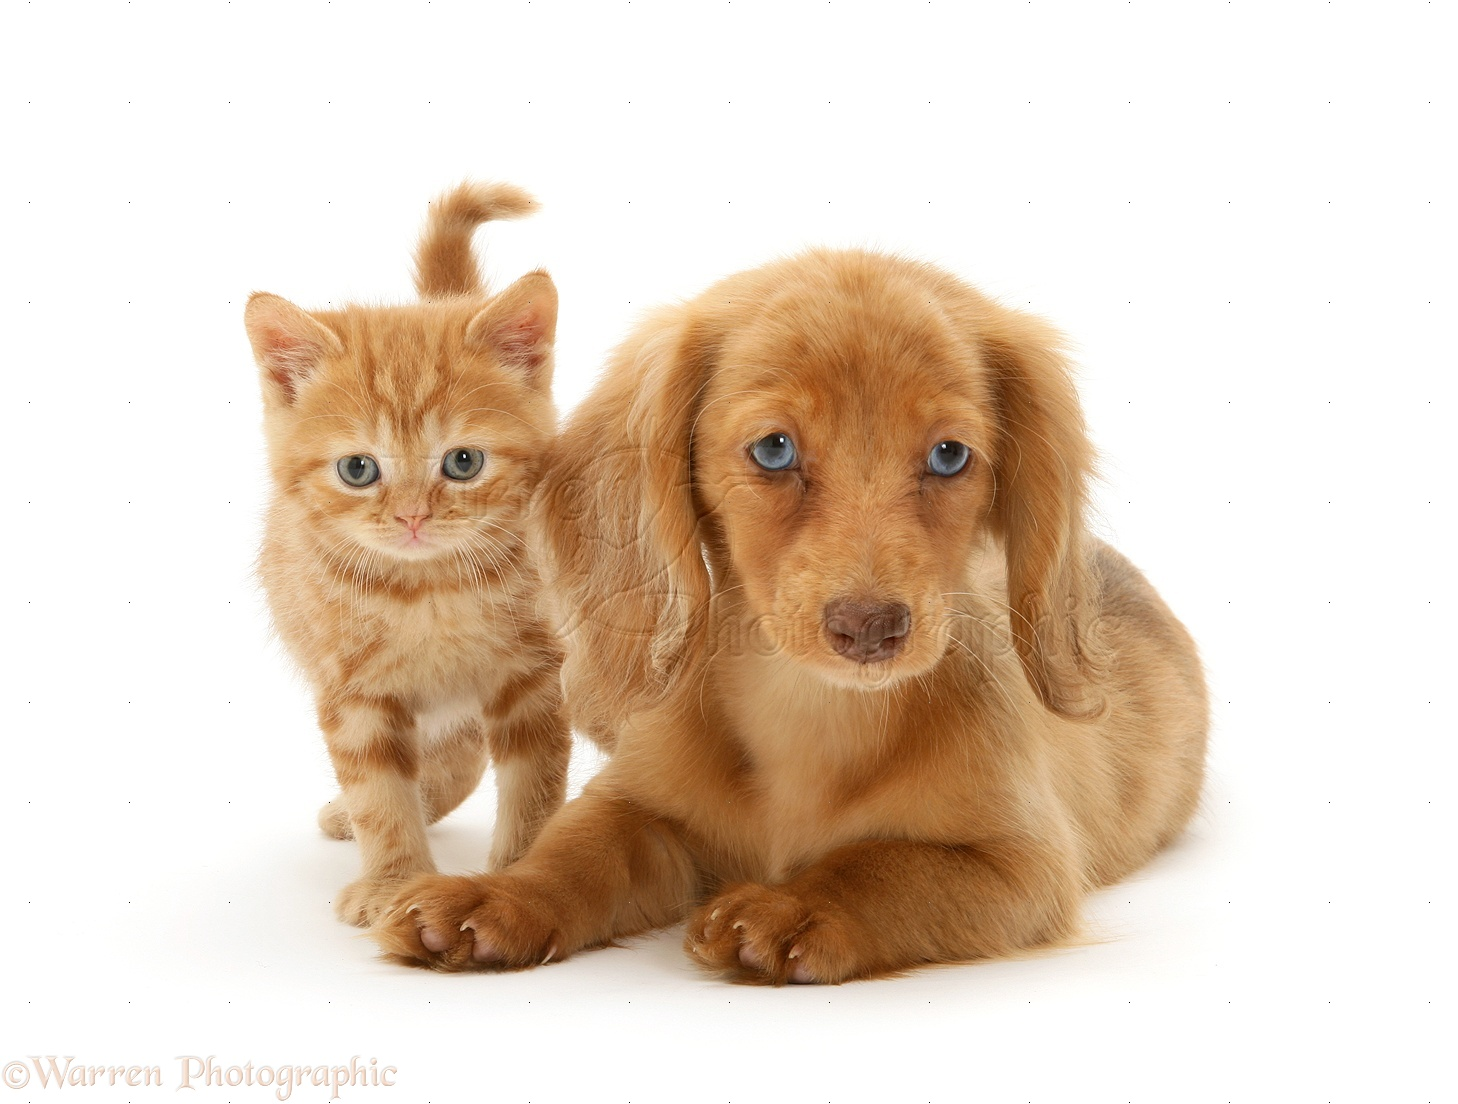 Pets Dachshund Pup And Ginger Kitten Photo Wp22474